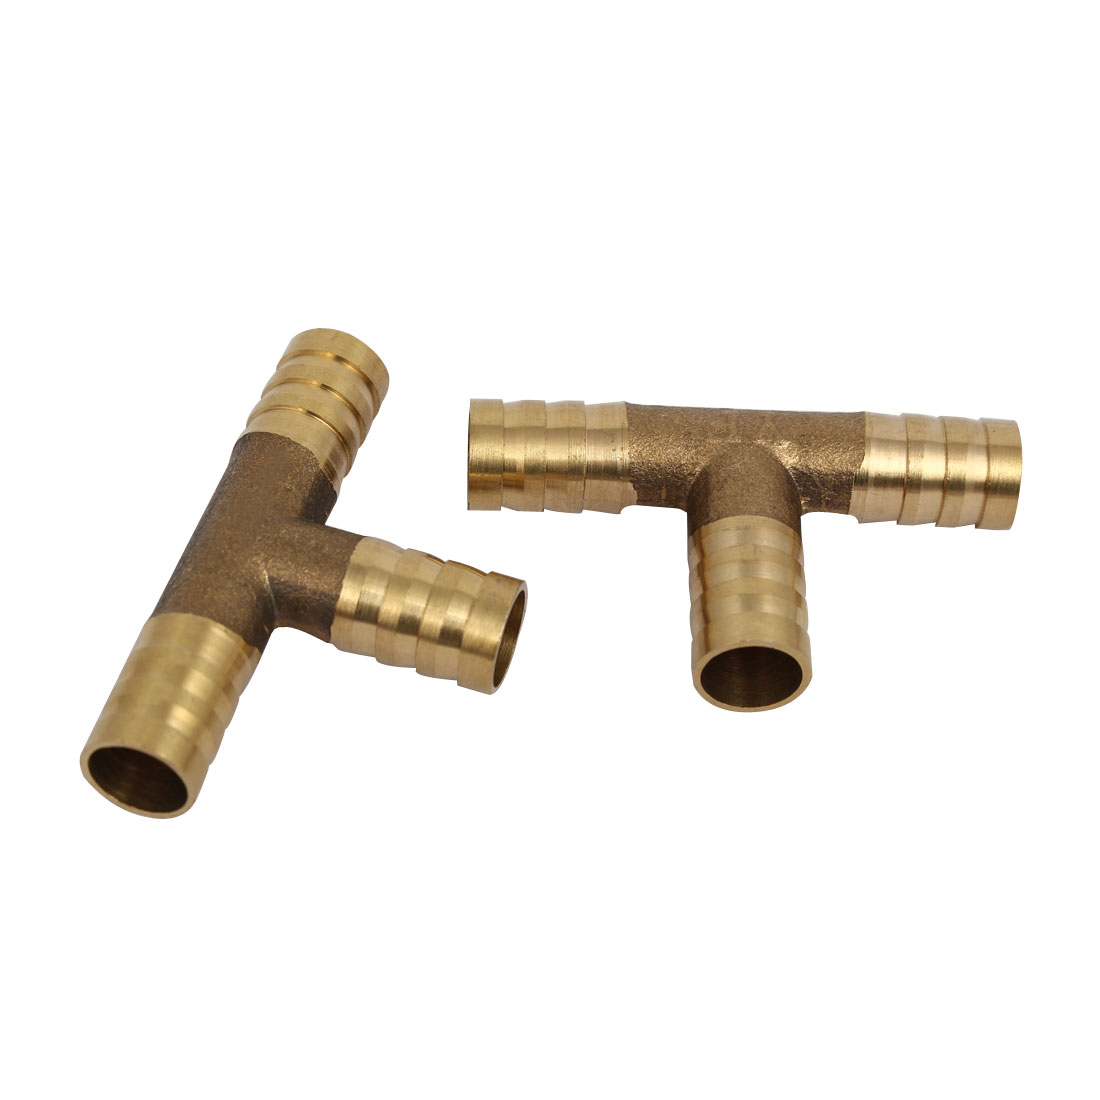 10mm Dia T Shaped 3 Way Hose Barb Fittings Pipe Tube Connecting Connectors 2pcs - image 3 of 3